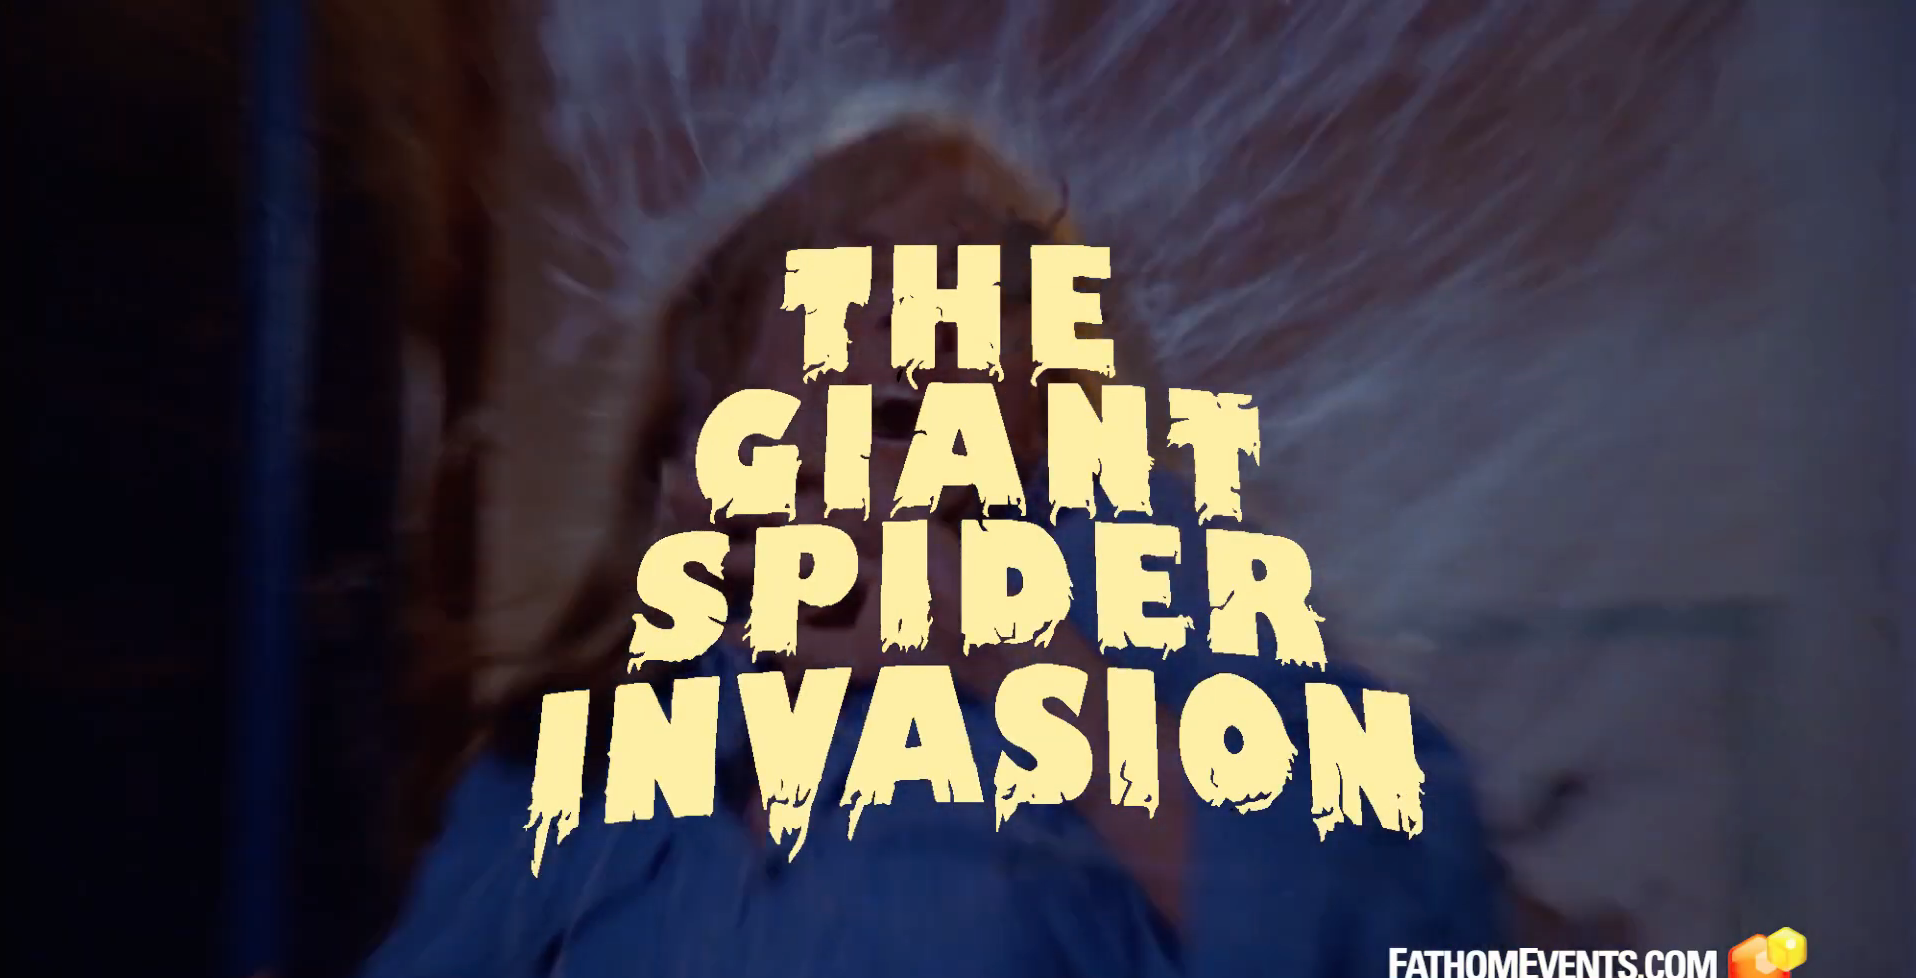 RiffTrax Live: Giant Spider Invasion